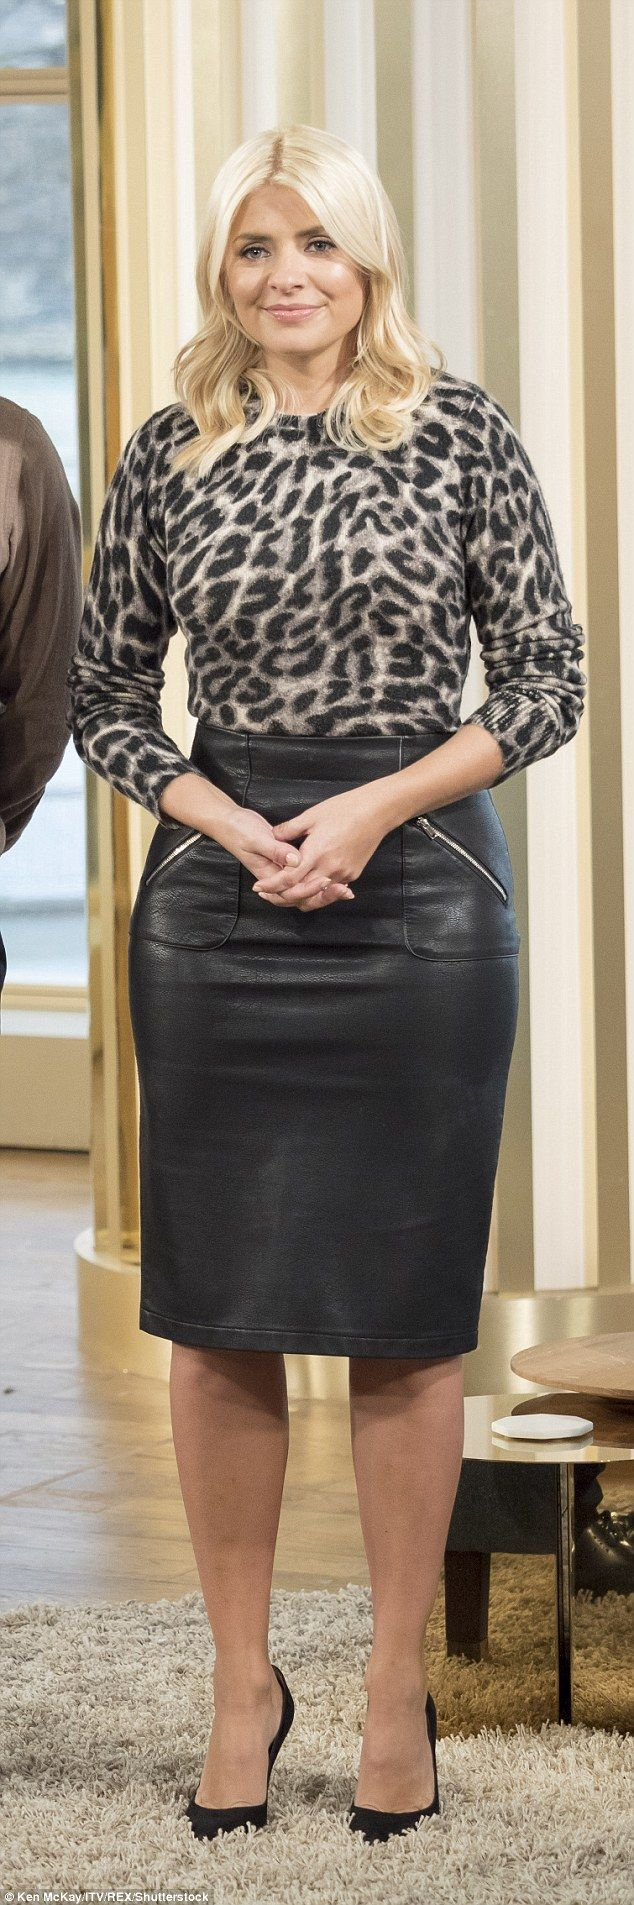 eb87d5c144 Welcome back: The blonde beauty, 35, wore an animal print jumper tucked into  a knee-length black leather skirt